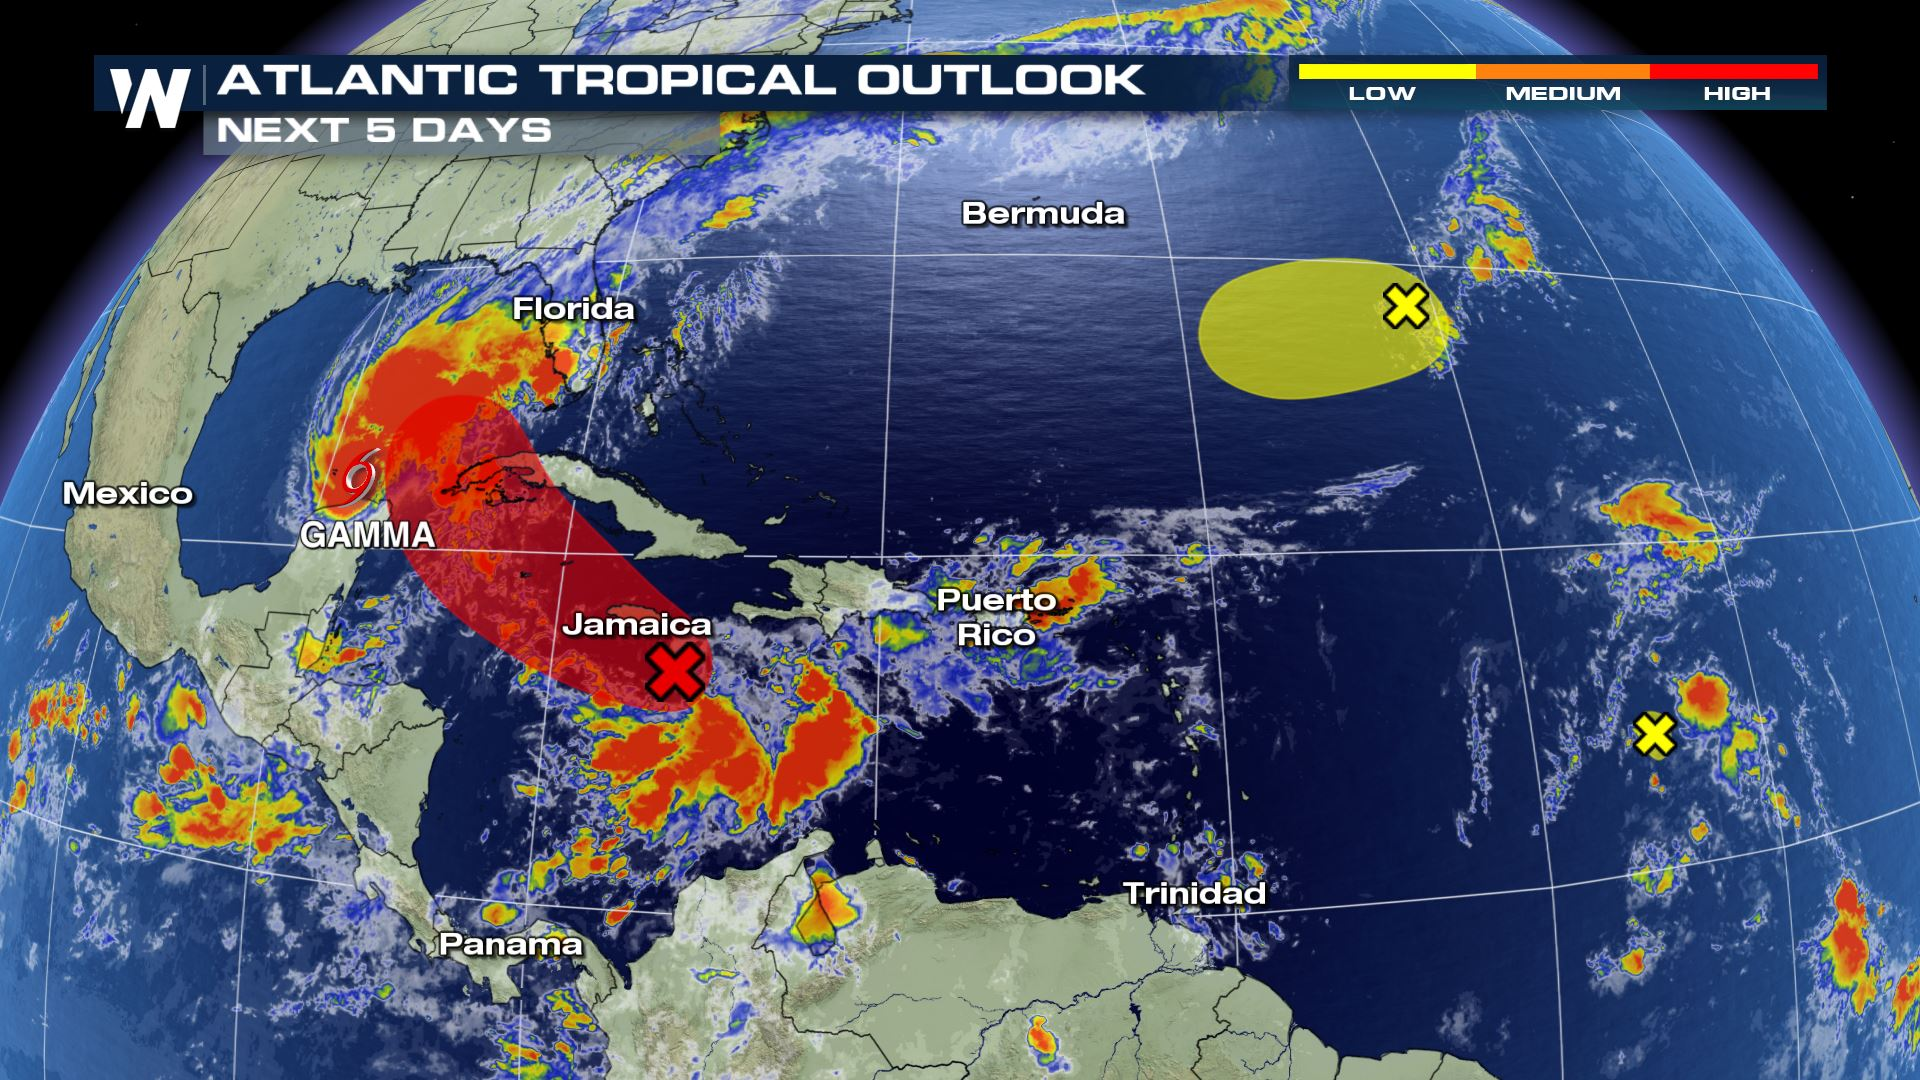 Tropics Update: Areas of Interest in the Atlantic Basin